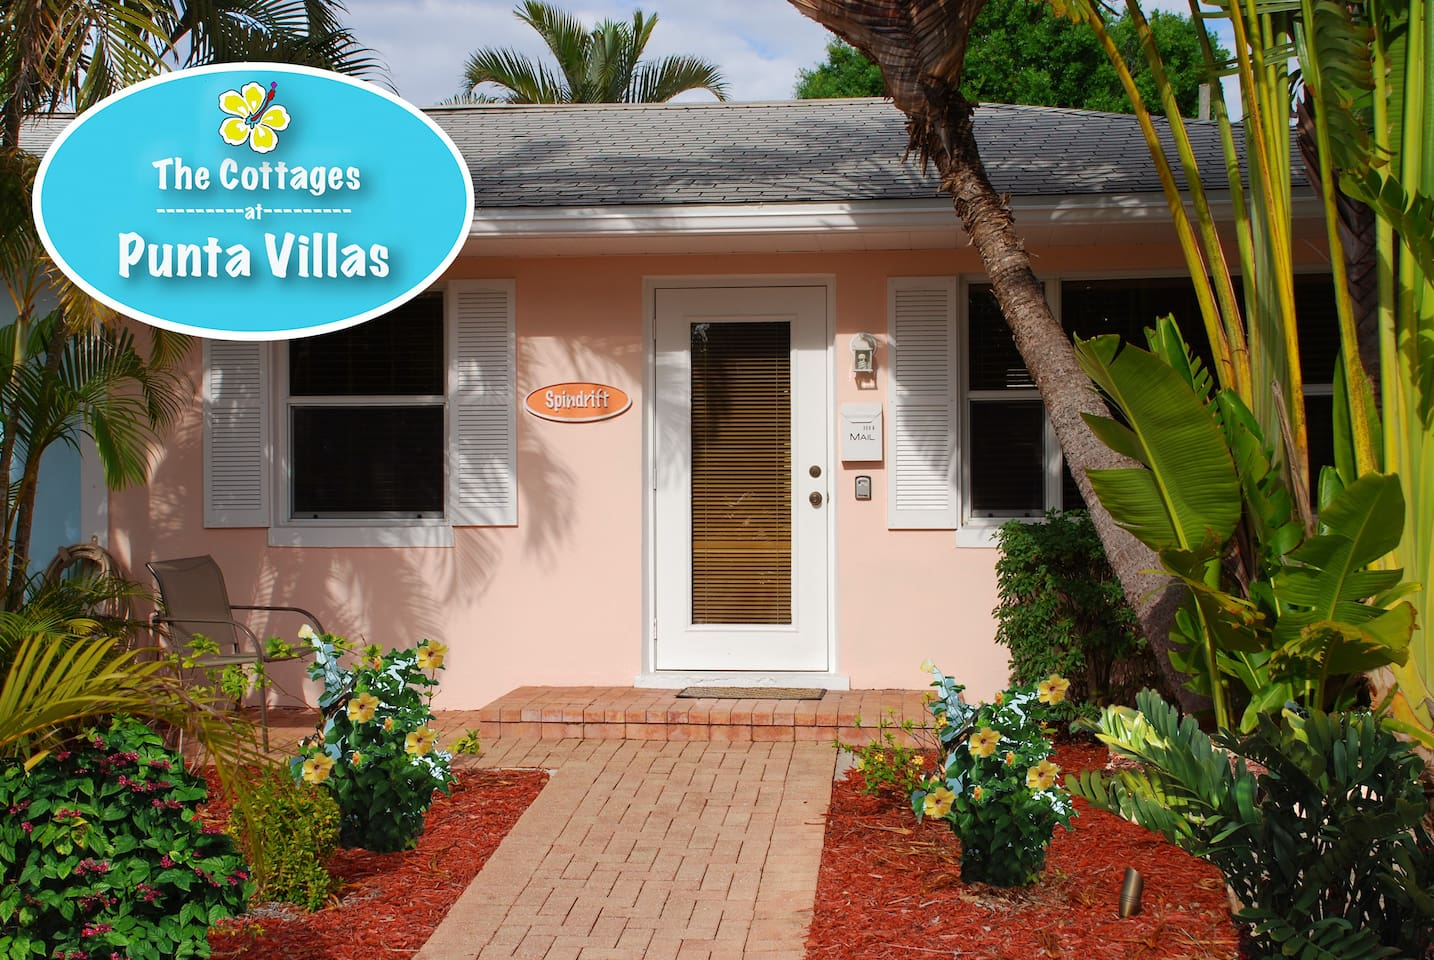 We own/operated a complex of 8 cottages in the Heart of Downtown Punta Gorda